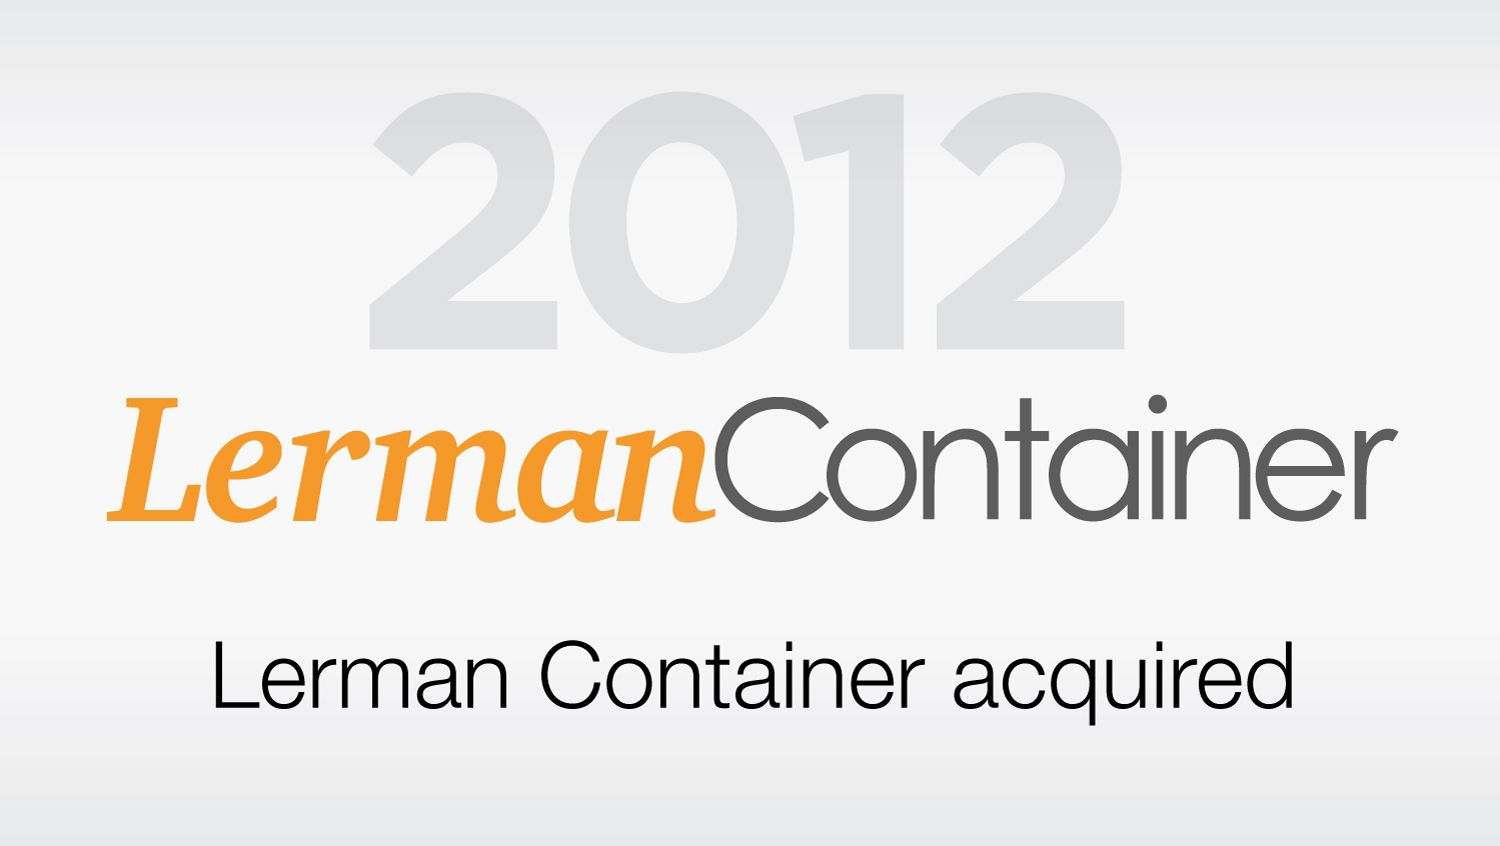 Lerman Container